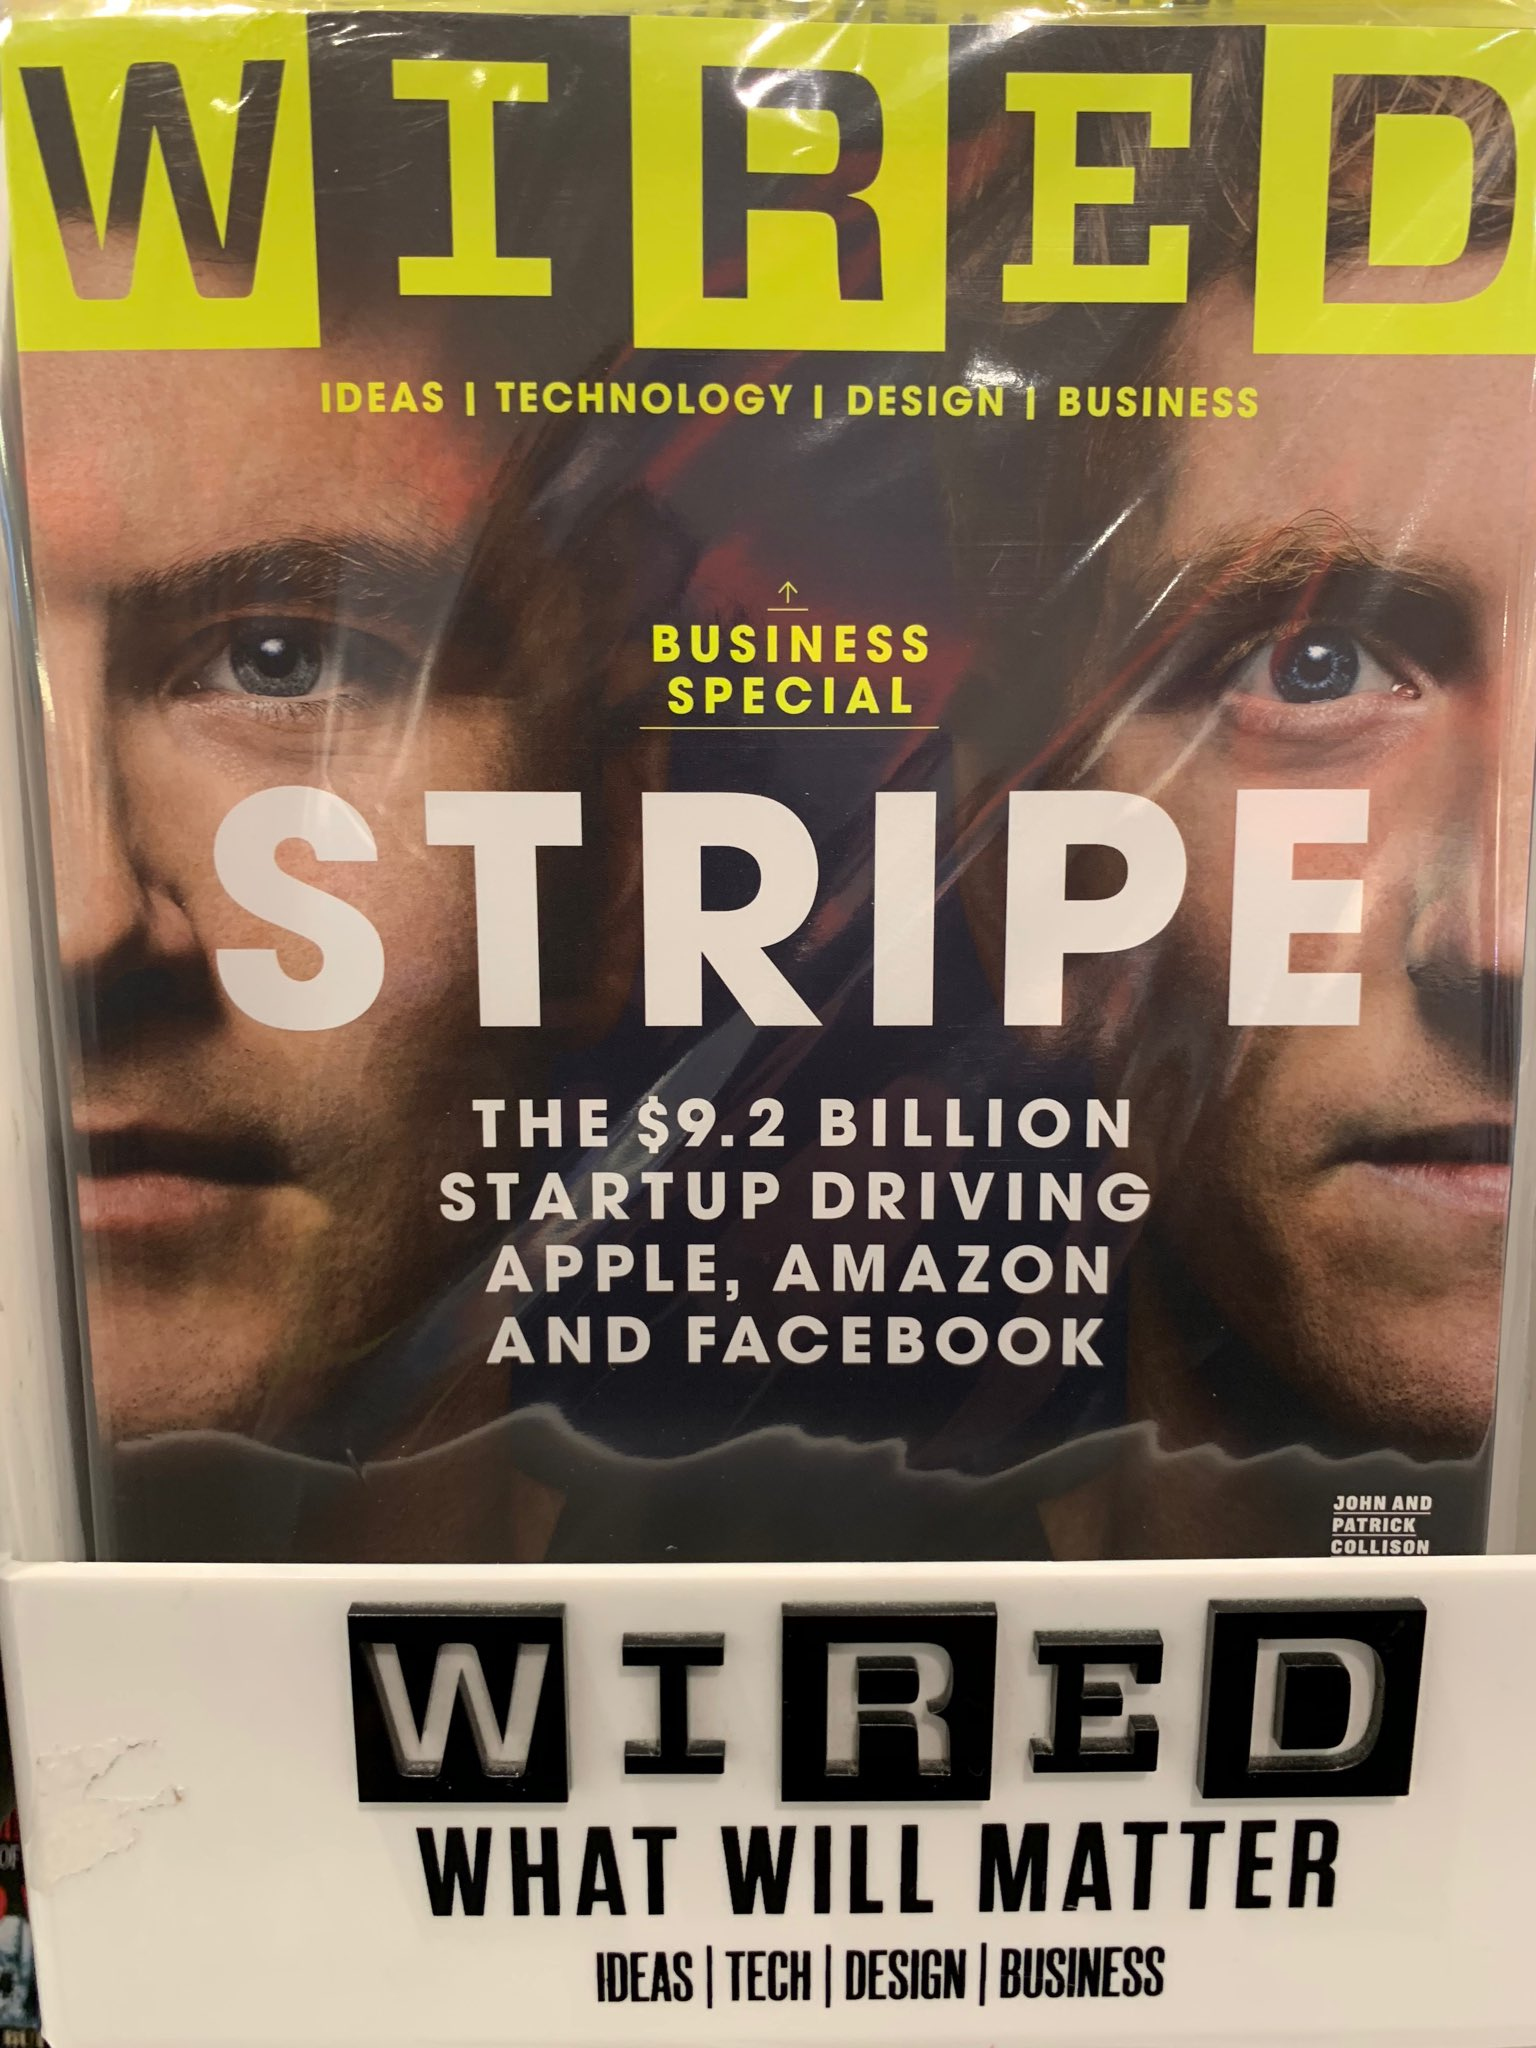 Great to see @patrickc @collision sharing the cover of @WiredUK @stripe https://t.co/54cJ3IEszy